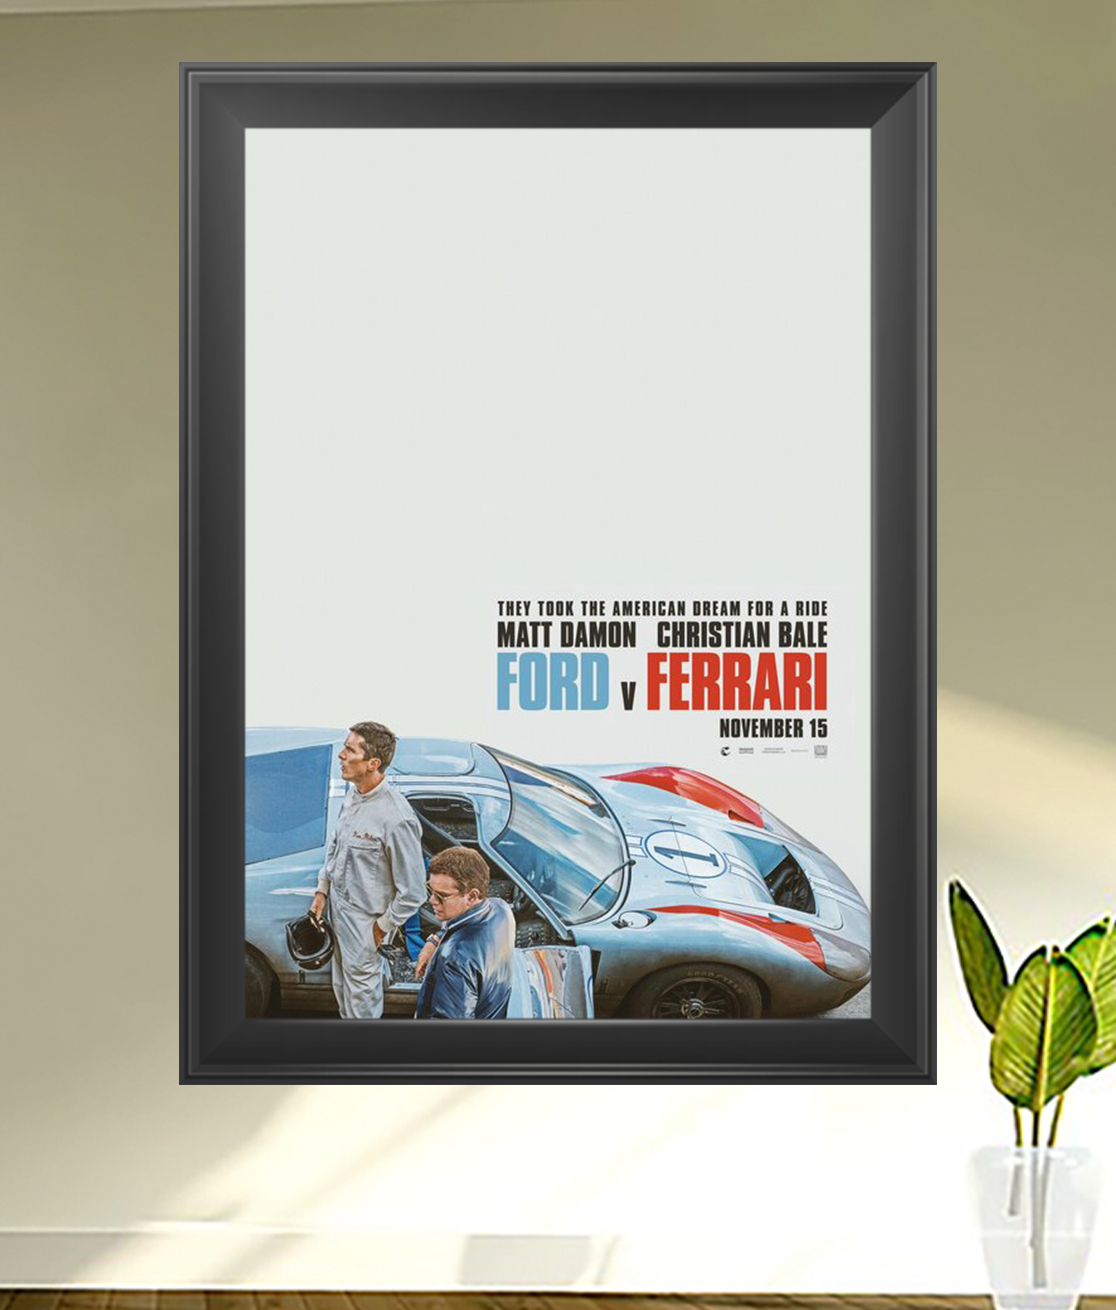 Click To Purchase The Original And Official Movie Poster For Ford V Ferrari